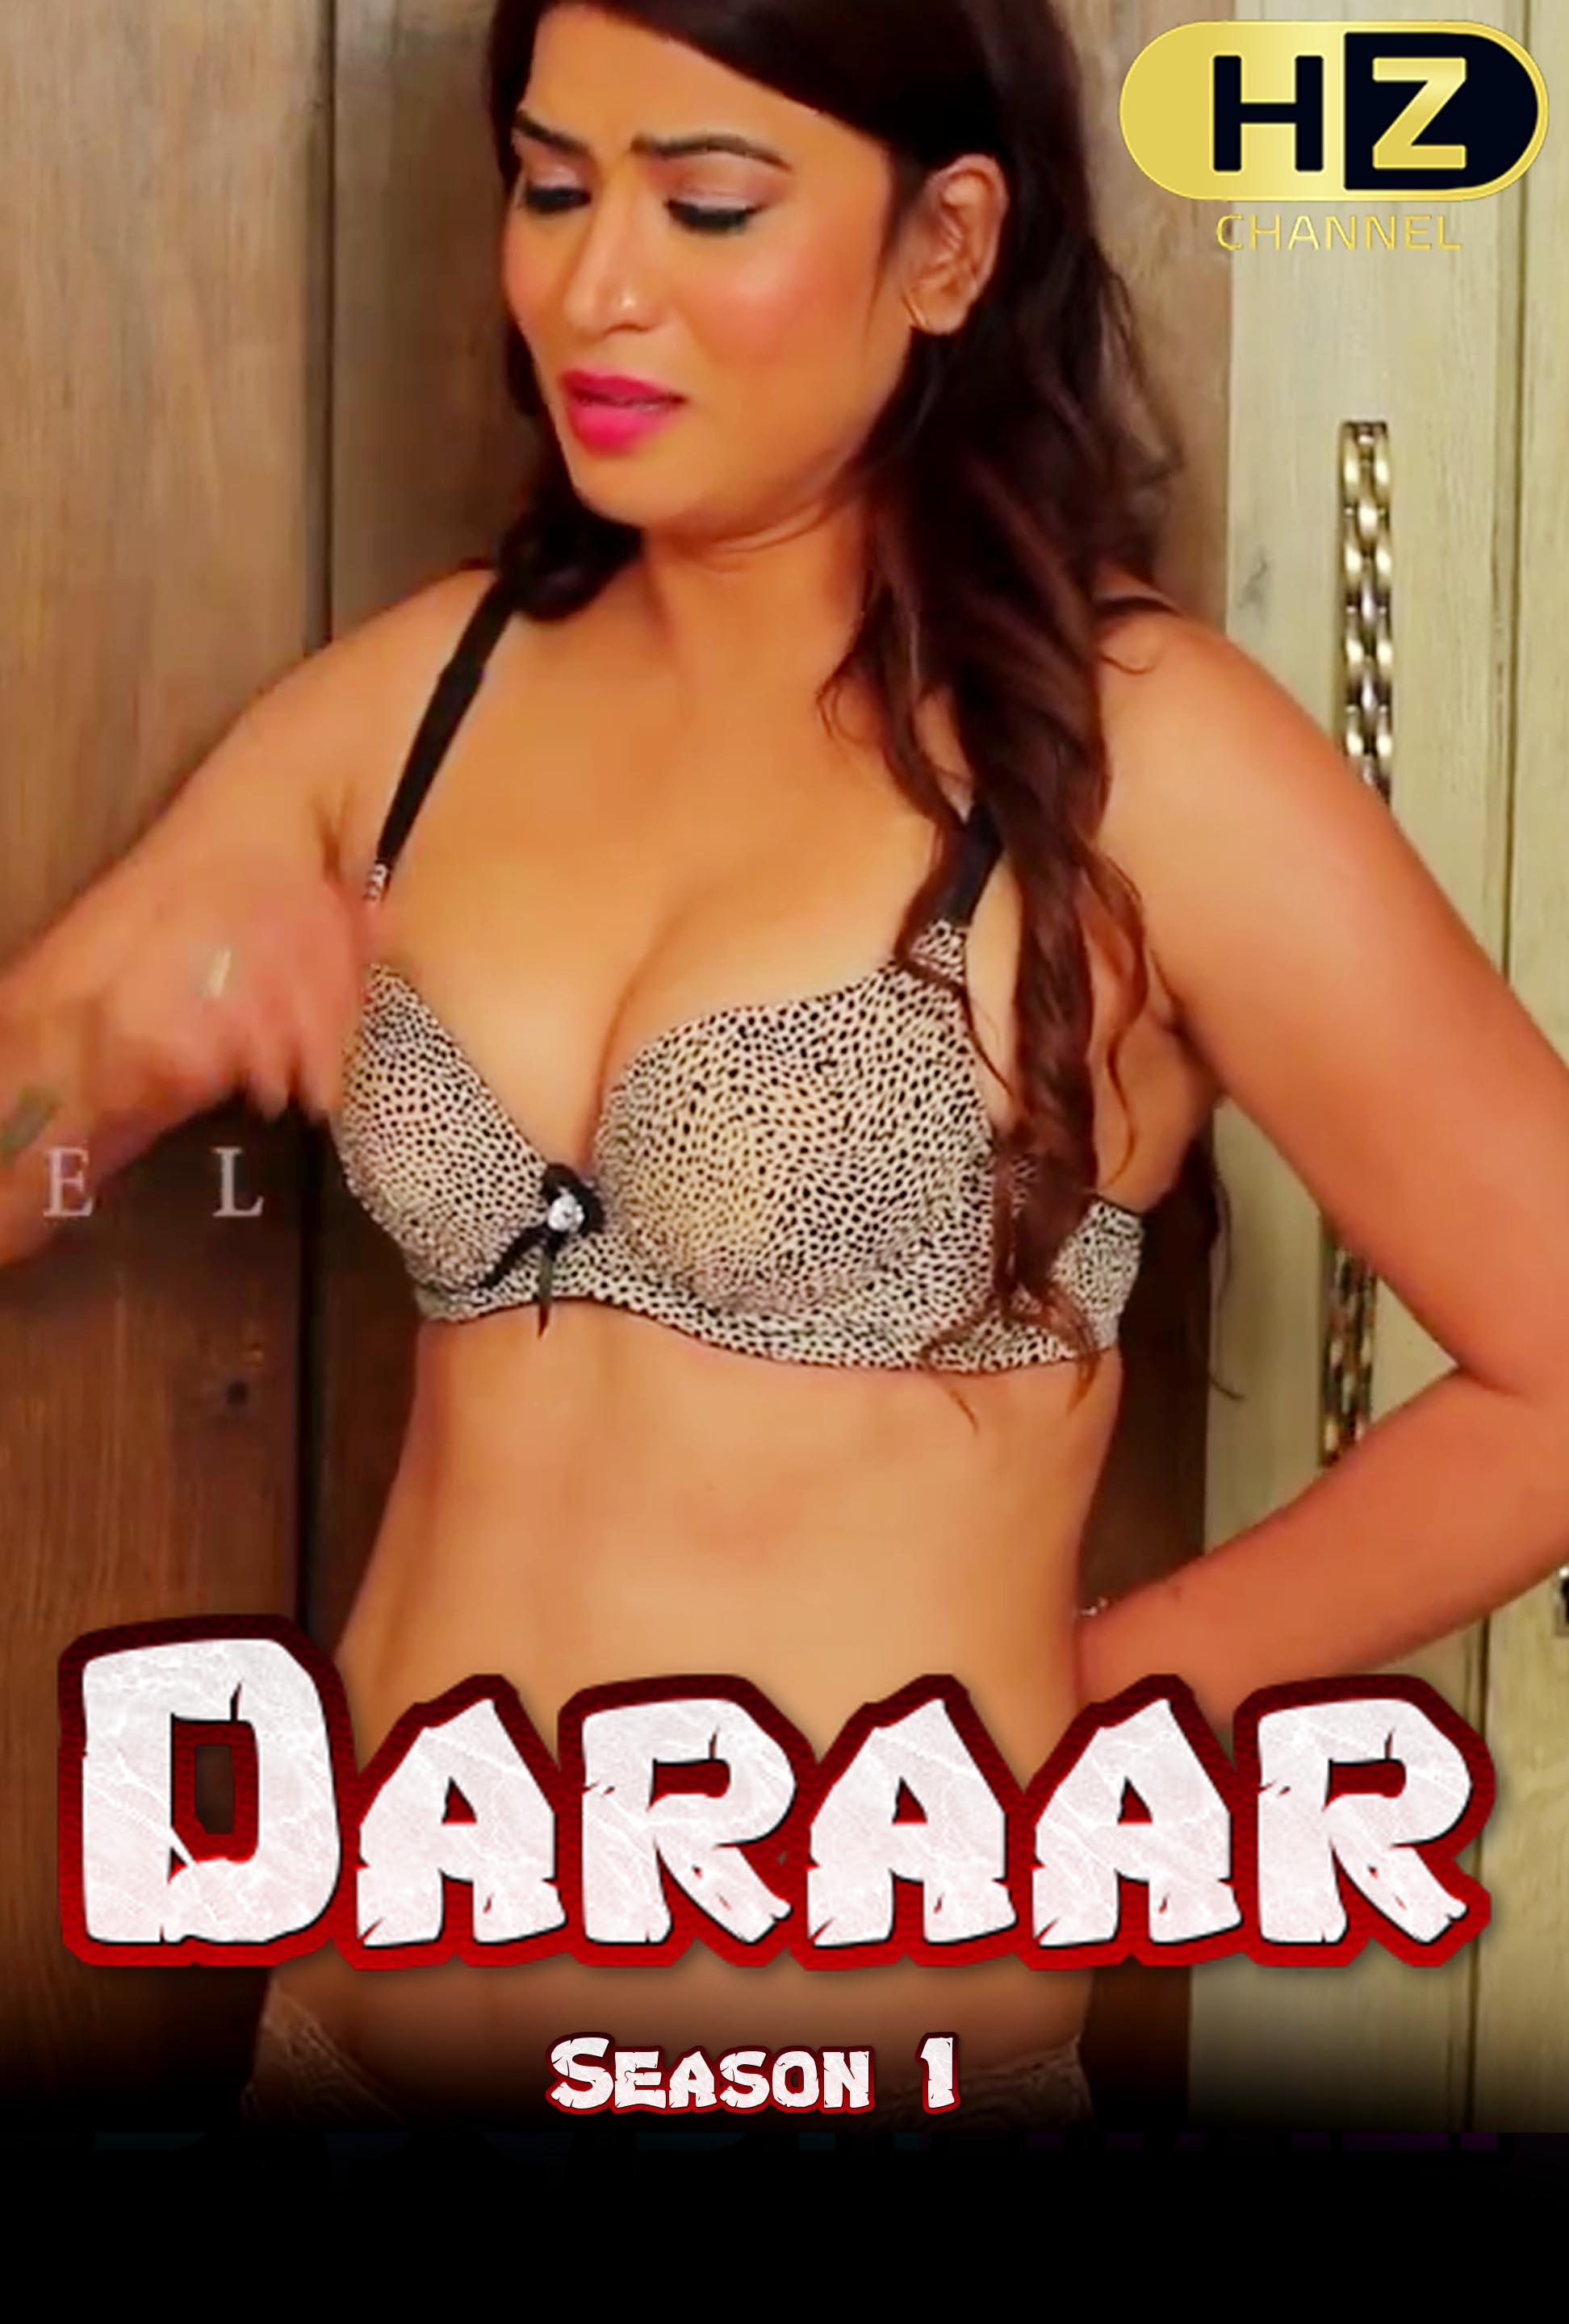 Daraar 2020 S01E03 Hindi Hootzy Channel Original Web Series 720p HDRip 170MB x264 AAC